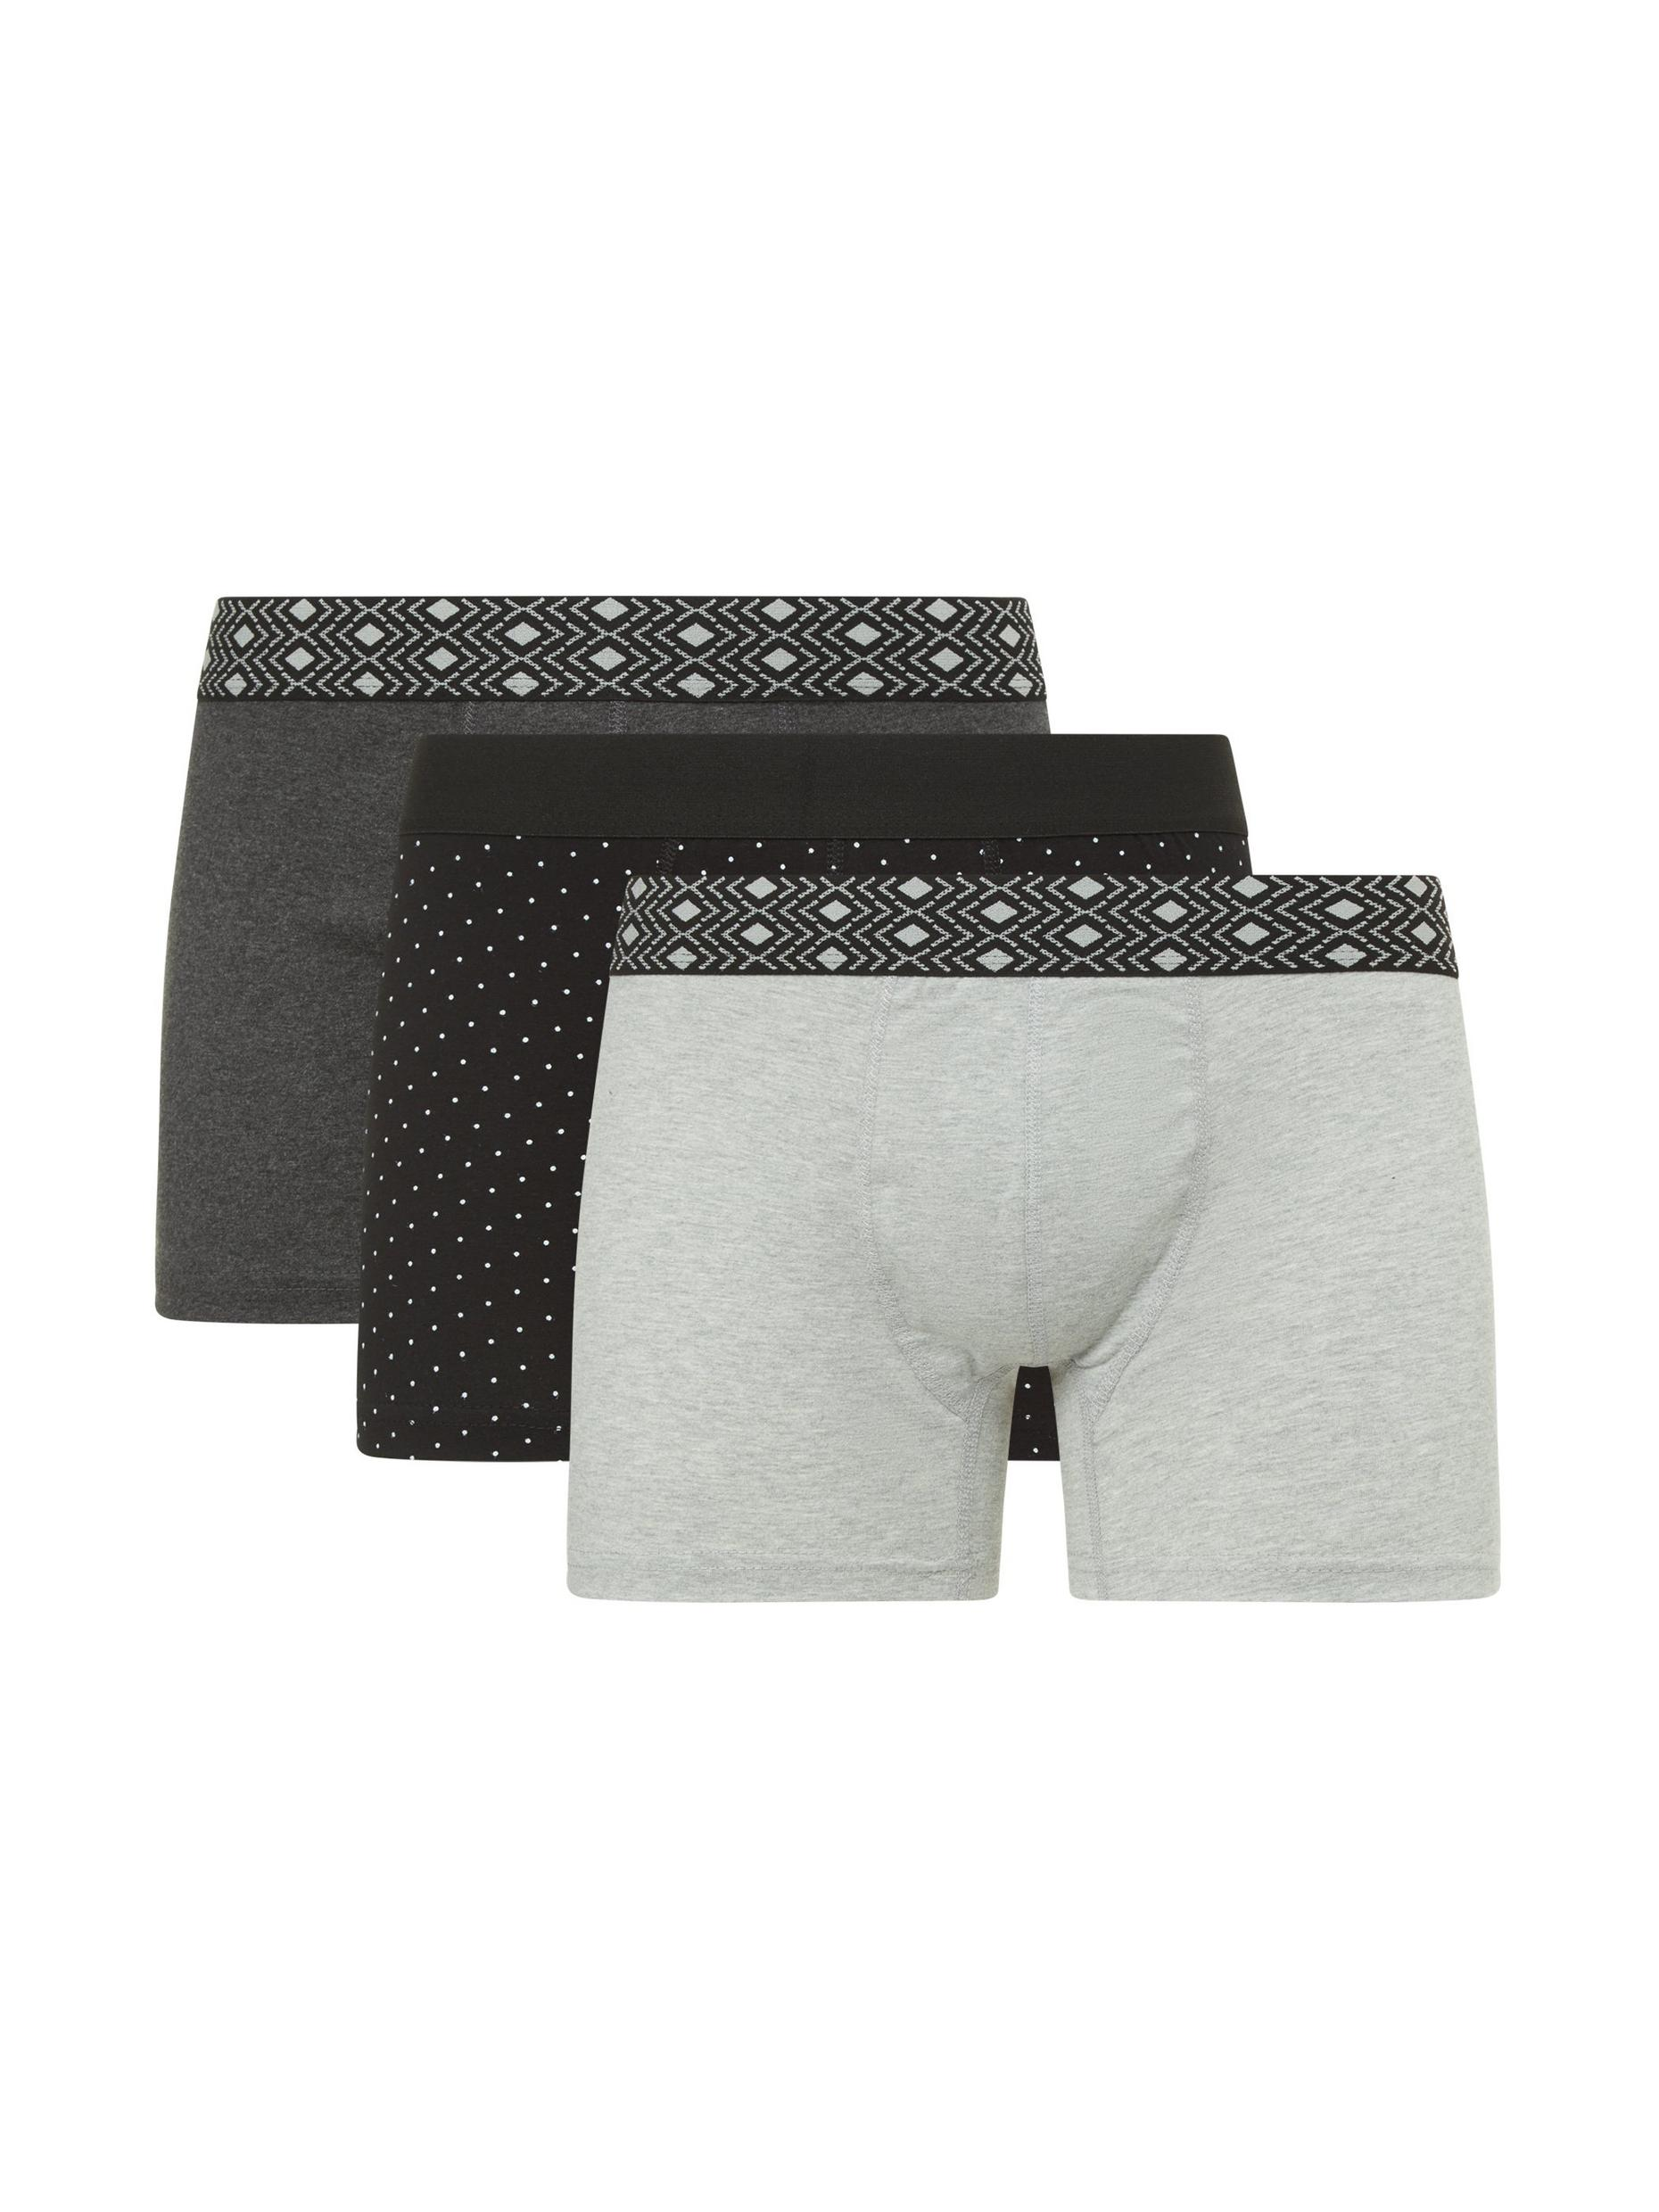 3 Pack Monochrome Trunks